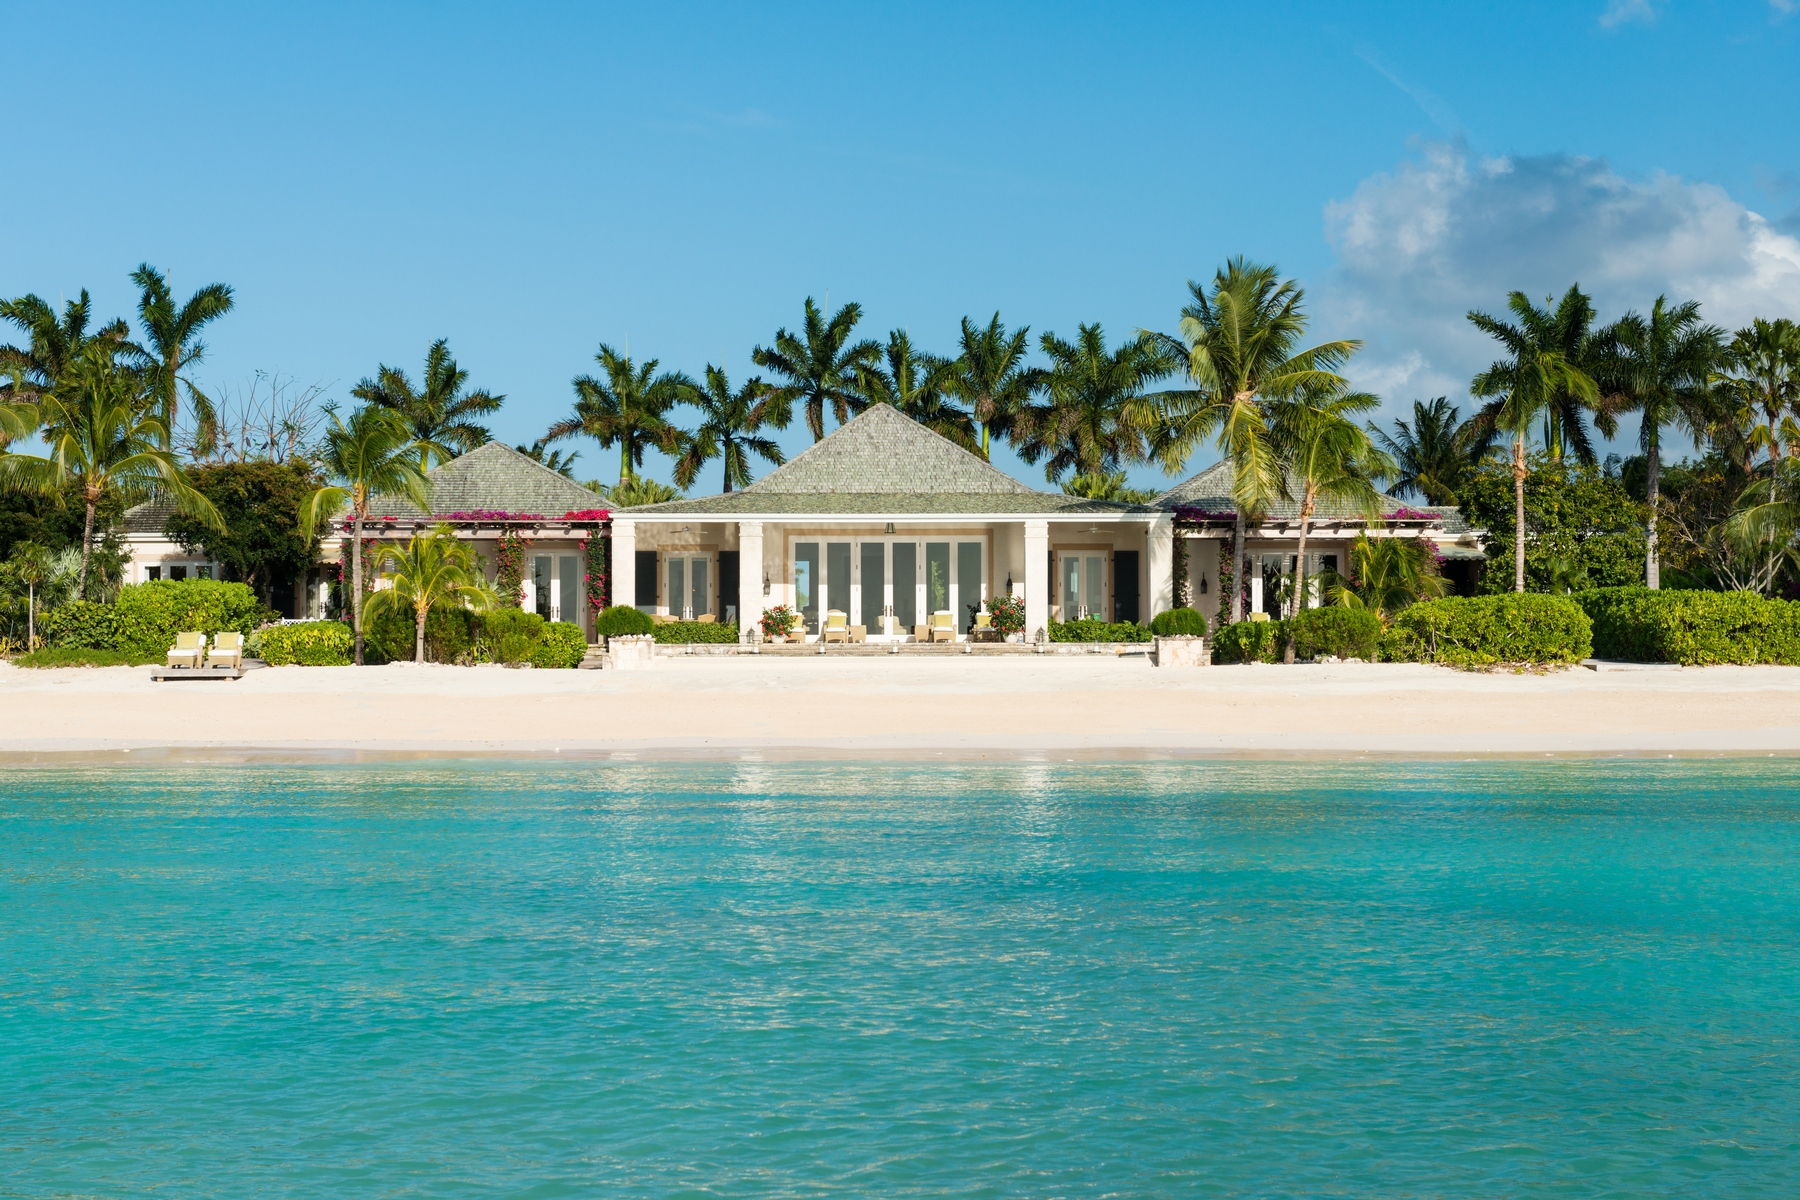 Single Family Home for Sale at Oliver's Cove Beachfront Estate Parrot Cay, Parrot Cay TC Turks And Caicos Islands